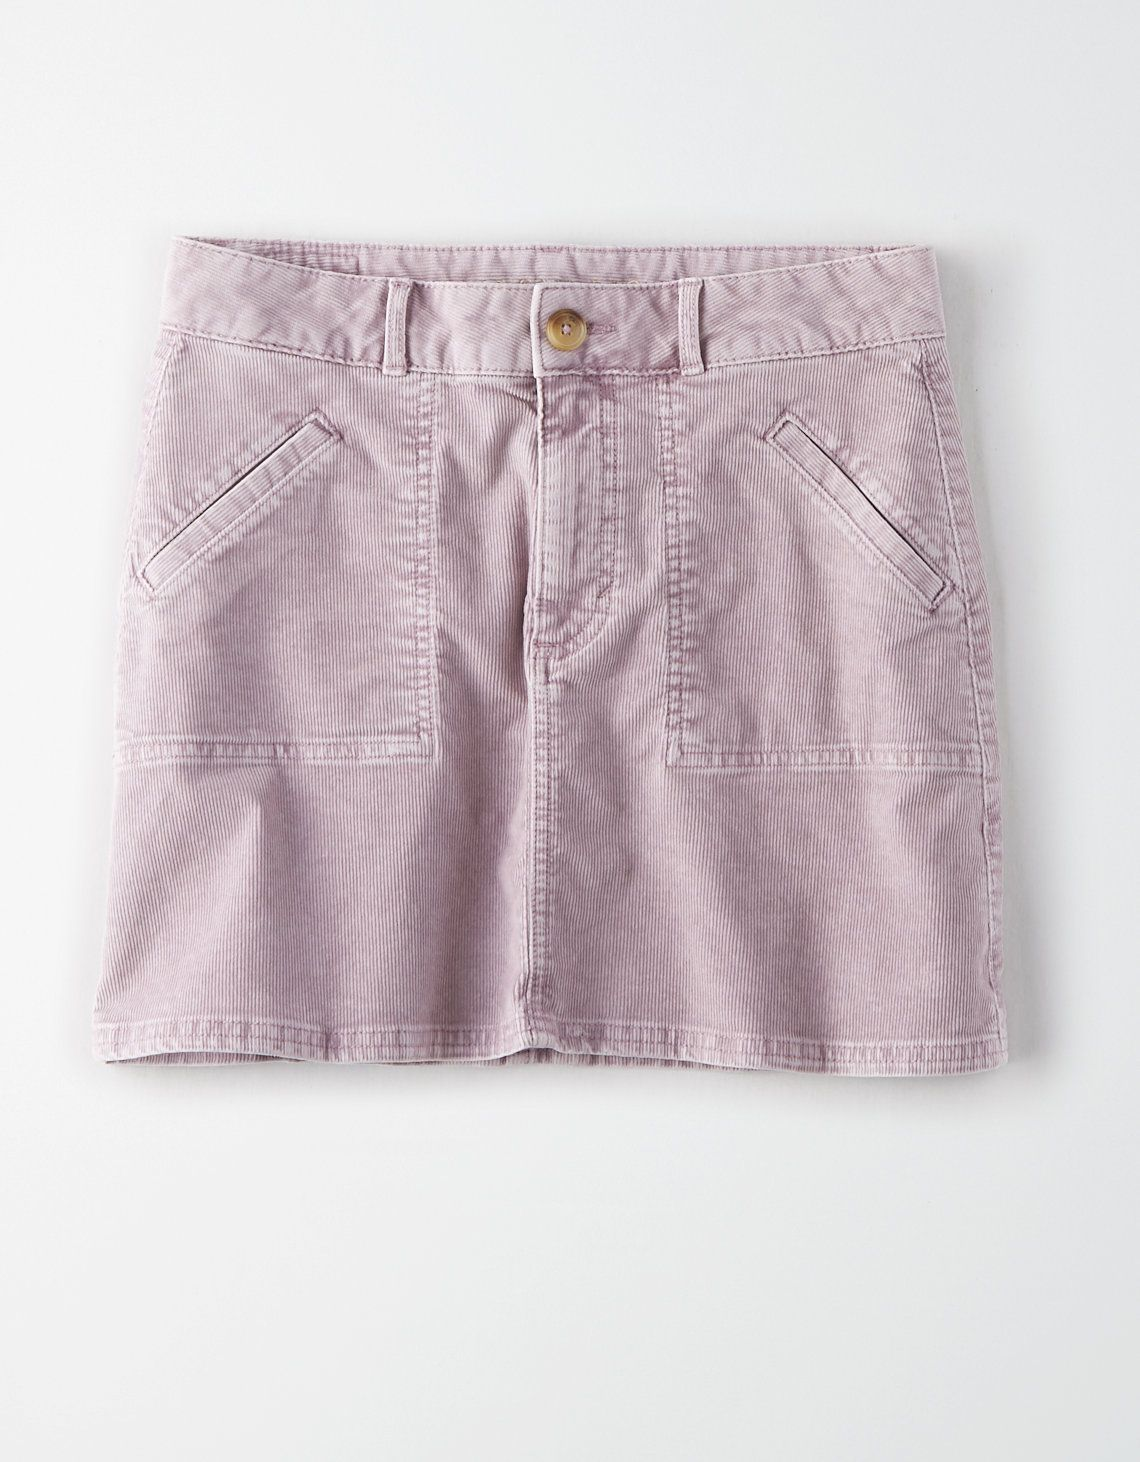 c8ce99295 AE High-Waisted Corduroy A-Line Skirt, Lavender   American Eagle Outfitters